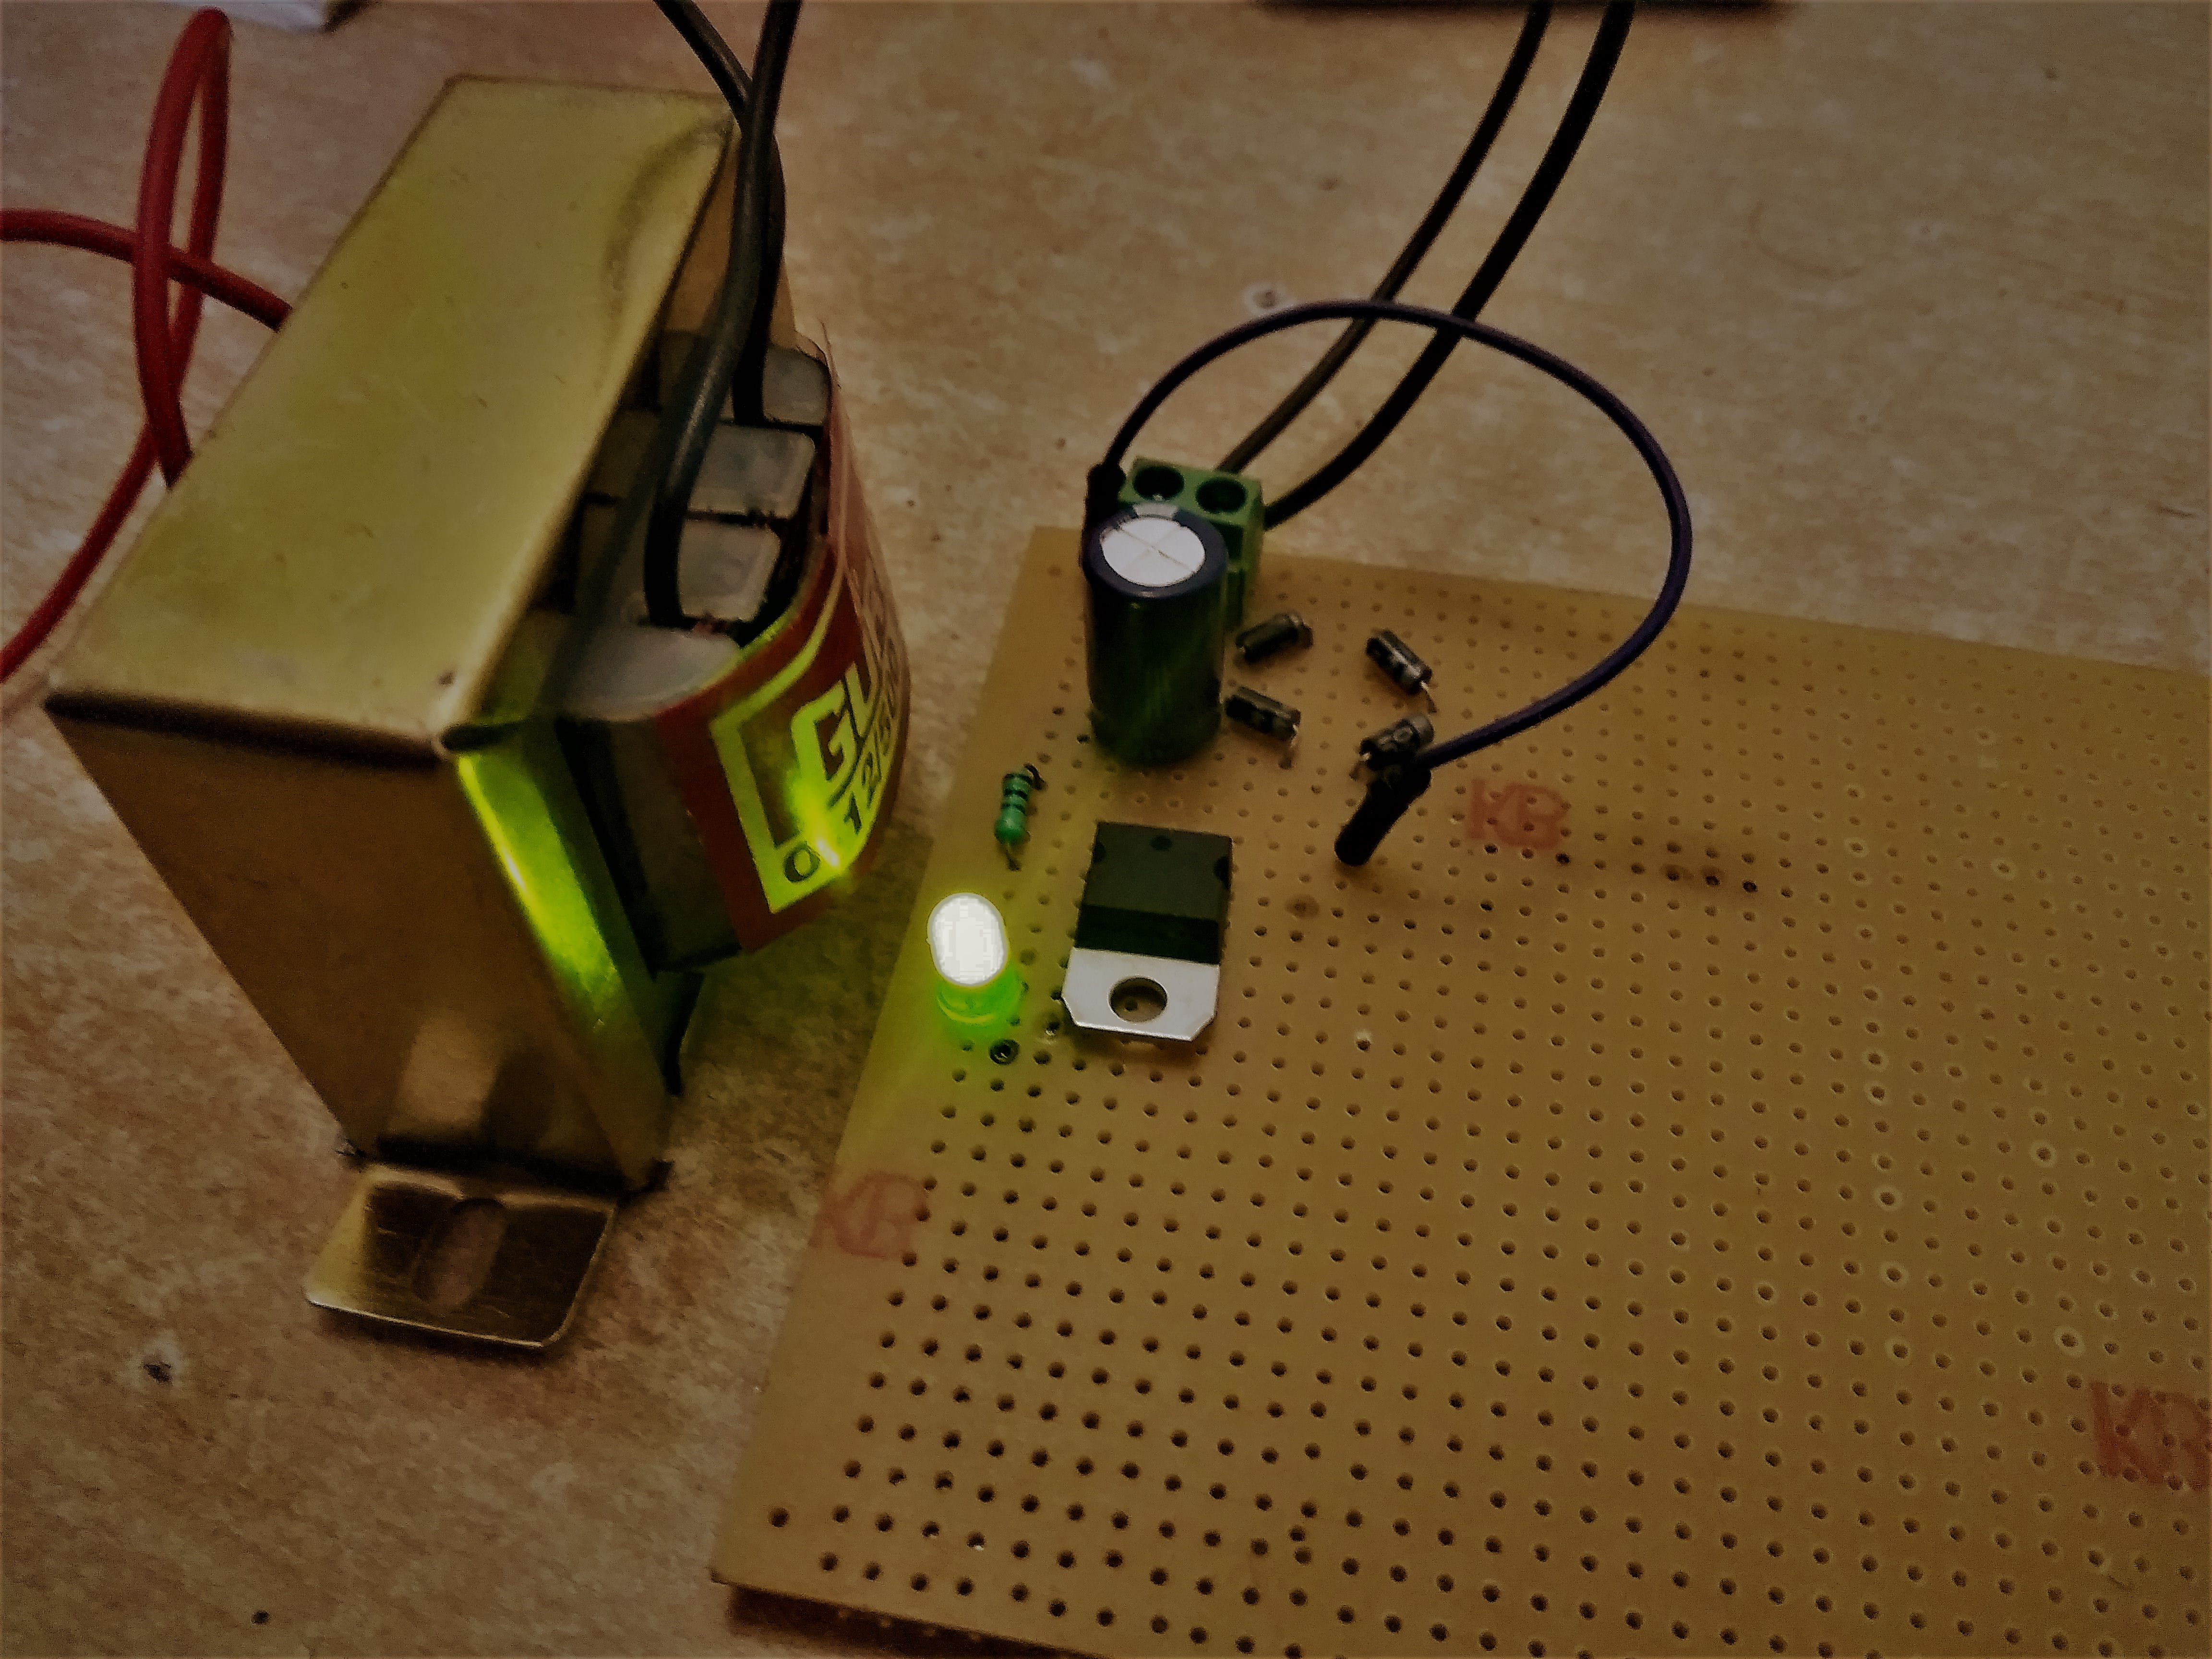 Assembling Power Supply components